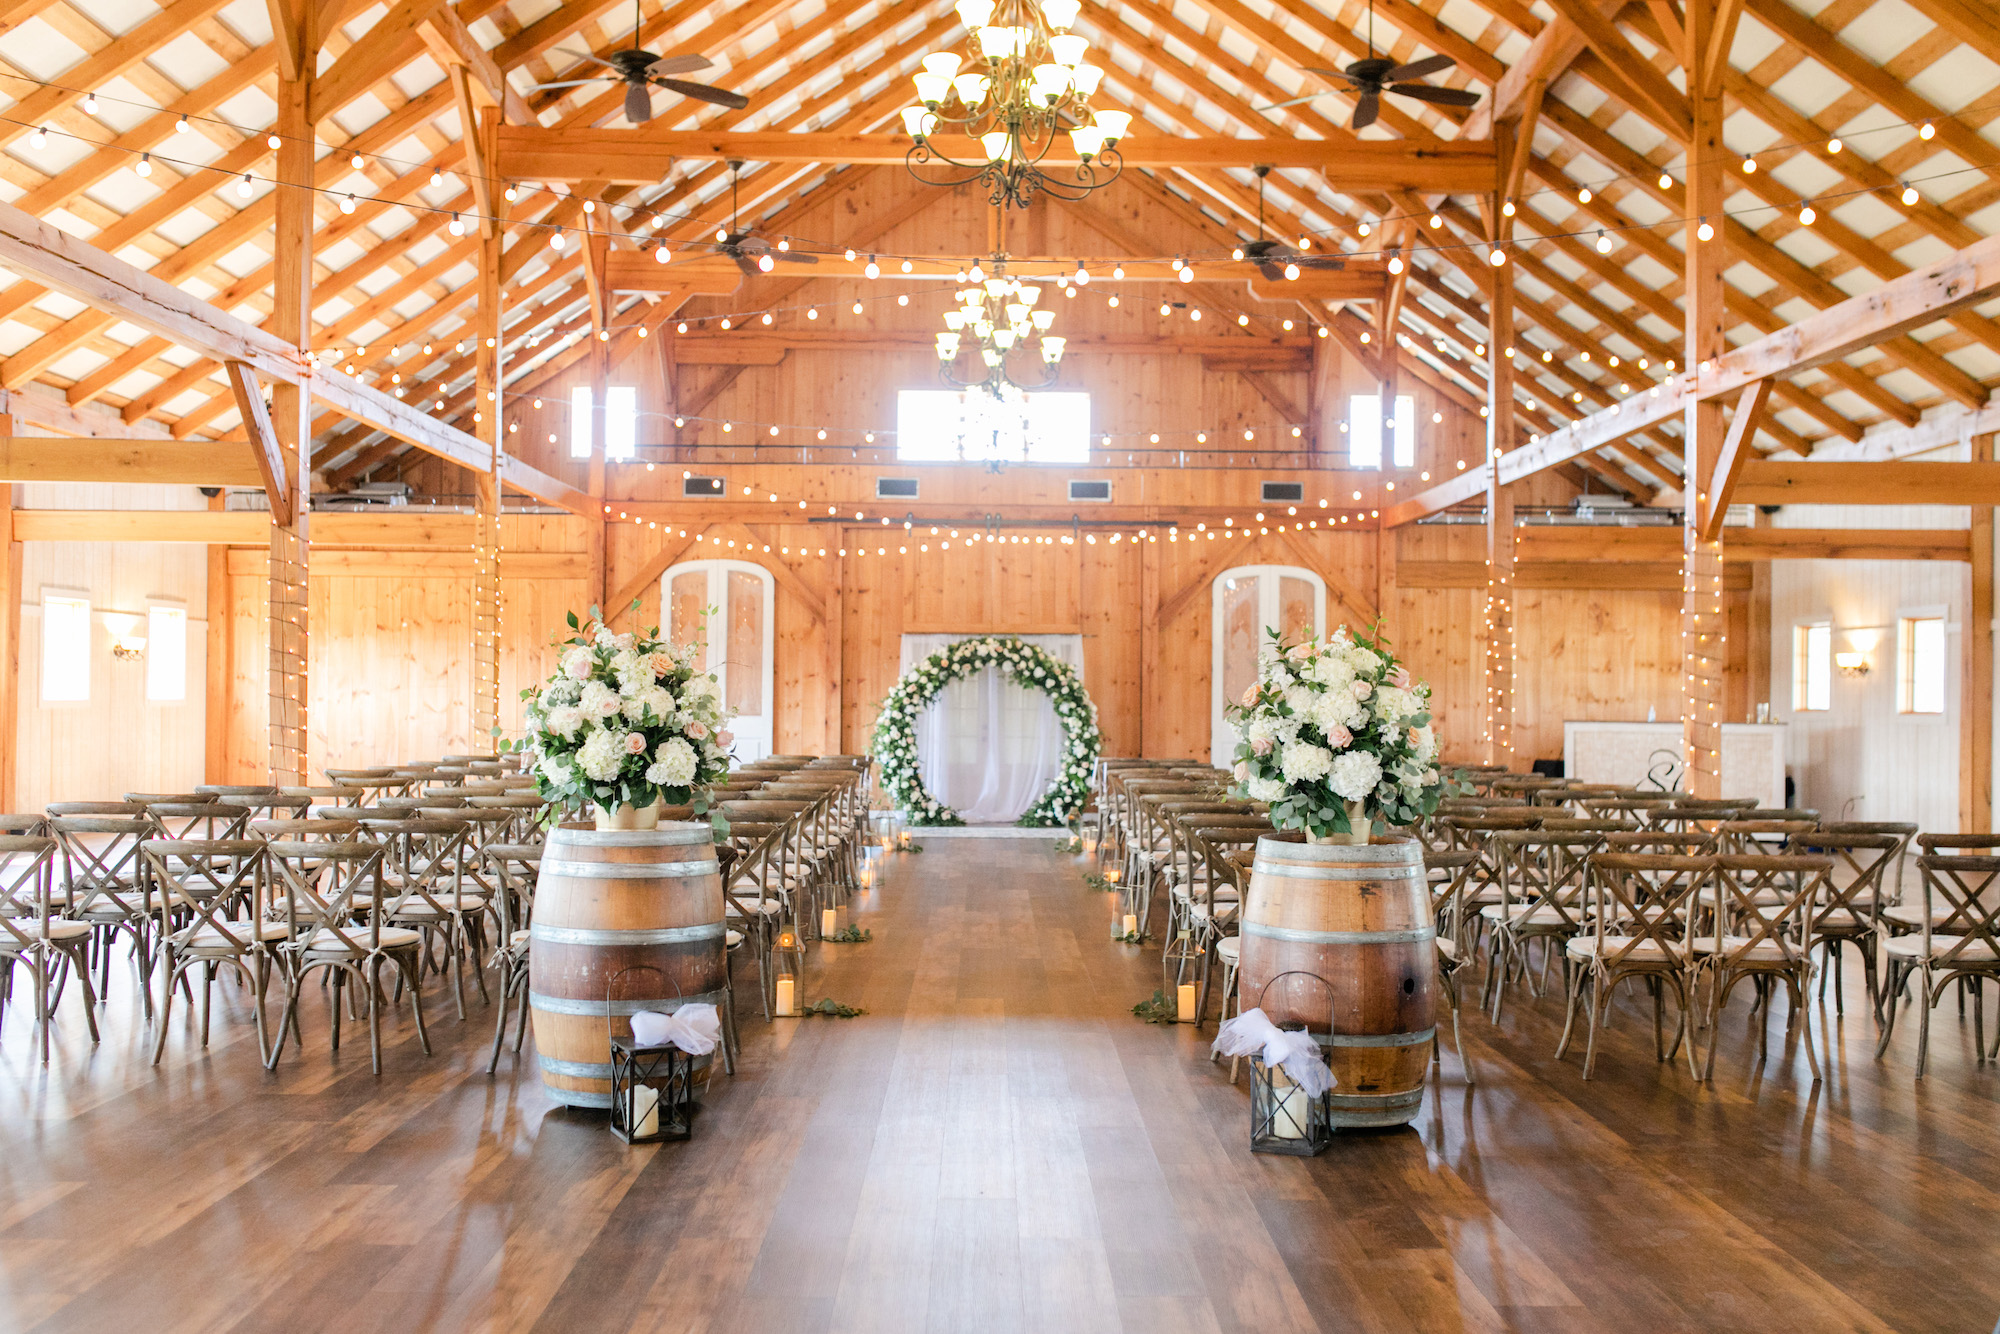 Indoor wedding ceremony design with aisle and floral arch